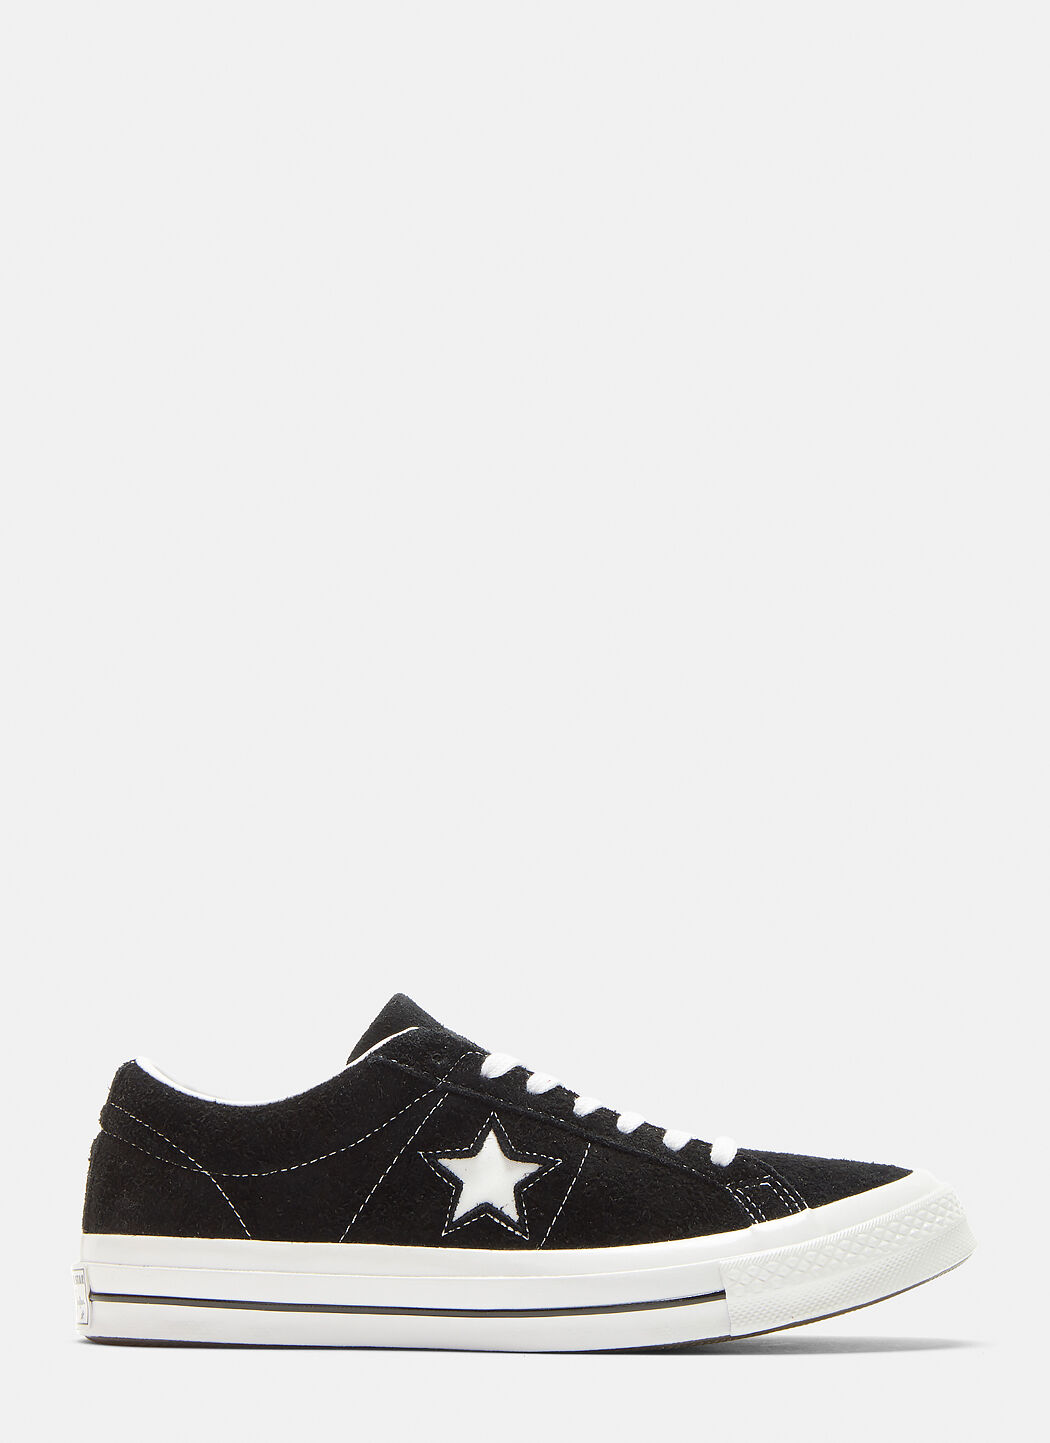 Converse One Star Suede Sneakers in Black | LN CC